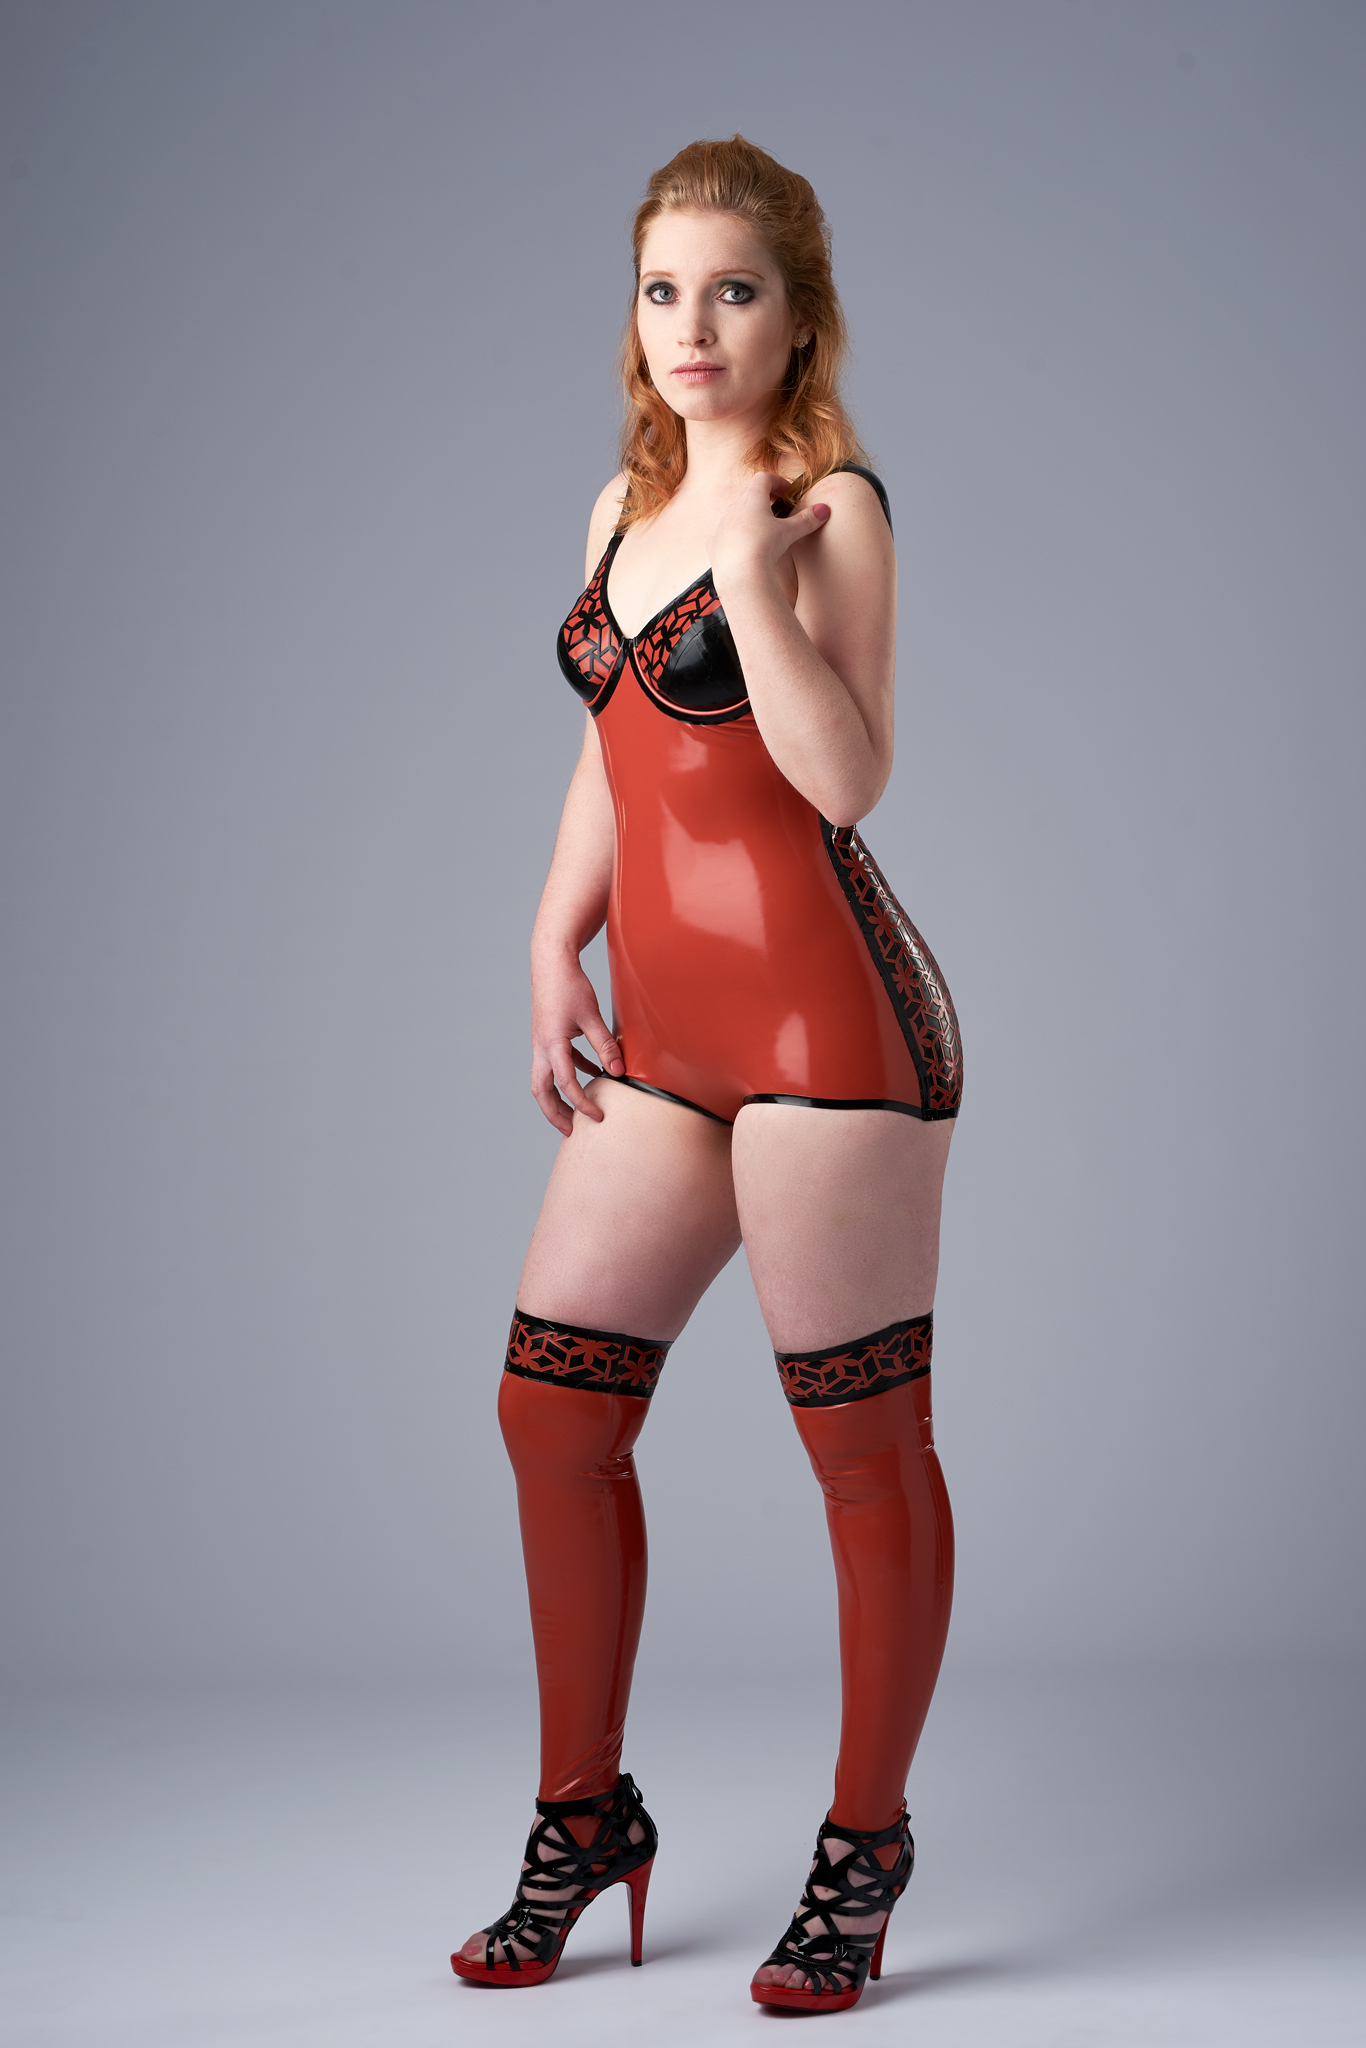 2017_01_21-Latex-Fashion-Odd-Territory-model-Megan-en-Marjolein0704_PSD-web.jpg